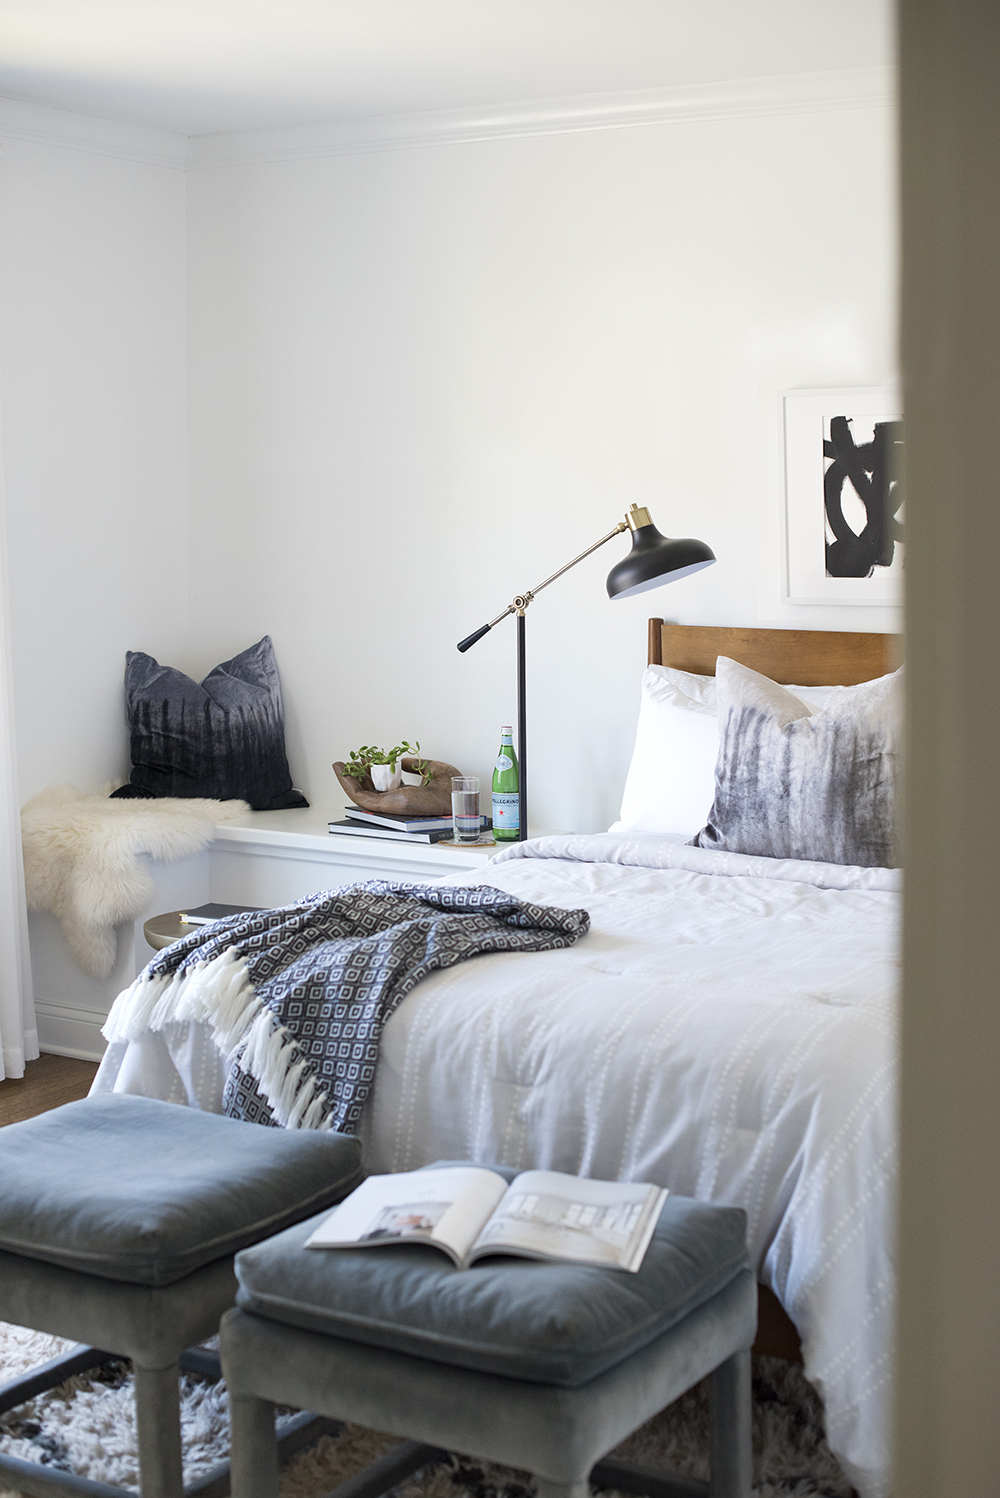 Tips for Shopping At Discount Decor Stores - roomfortuesday.com